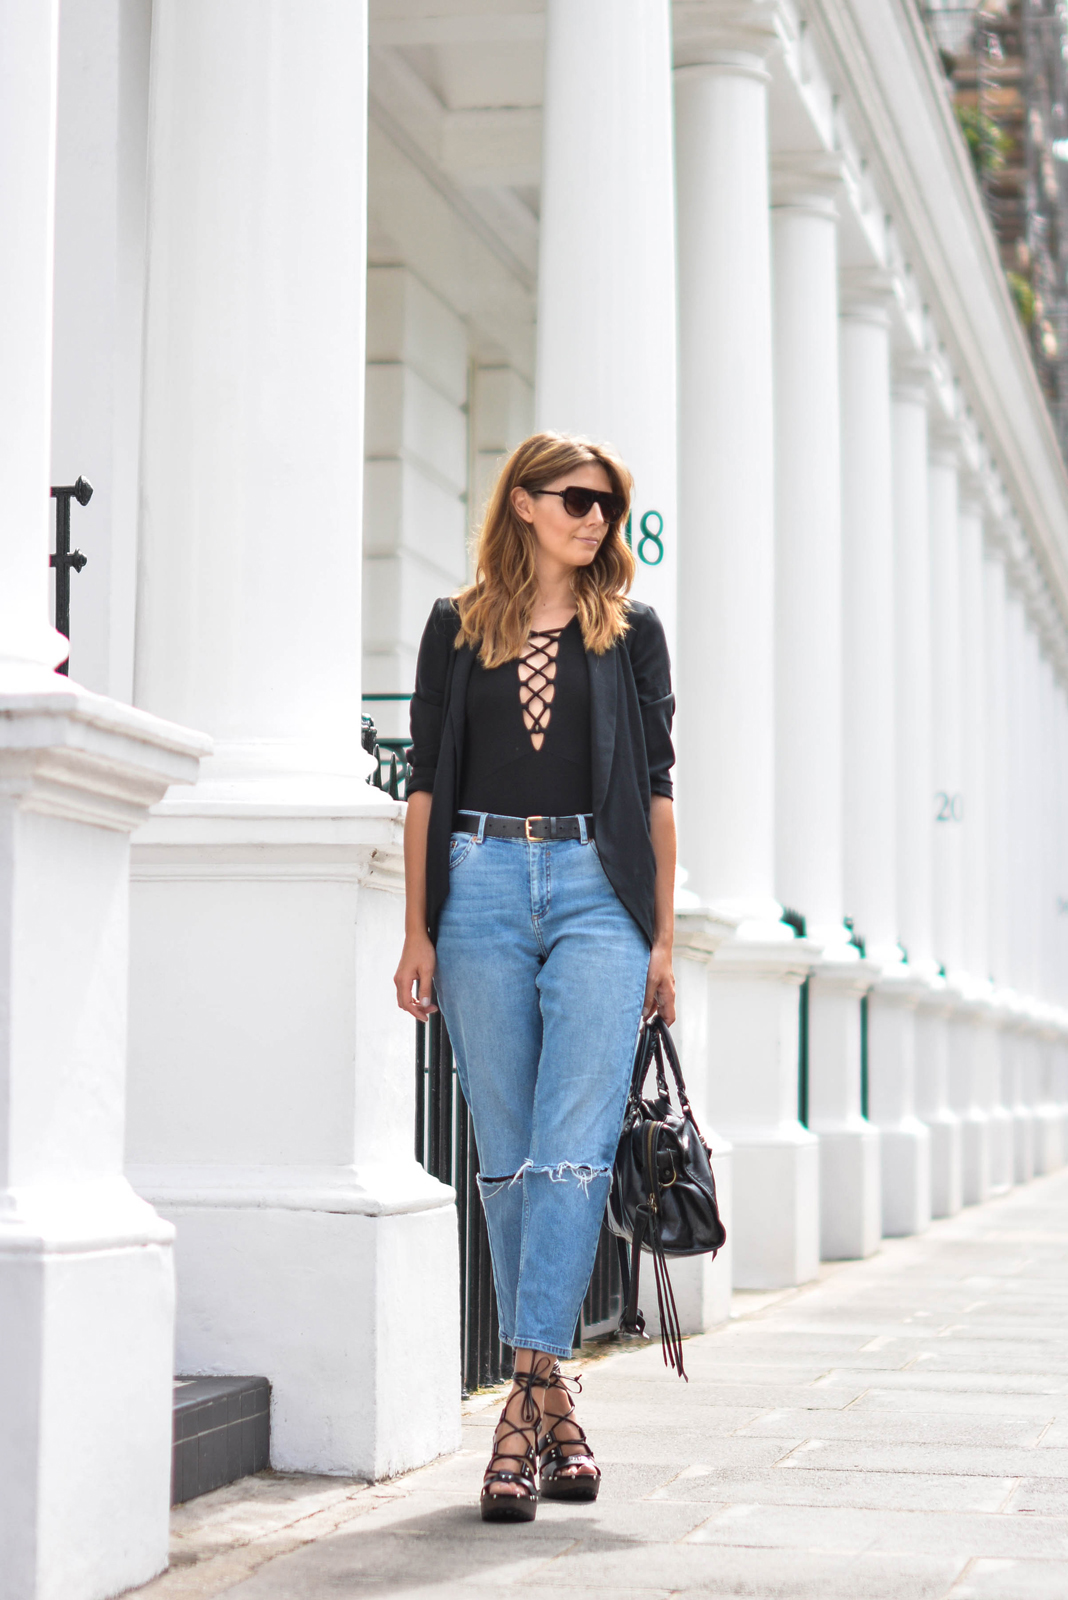 EJSTYLE wears Lace up black top, Black blazer, girlfreind jeans, black belt, Flat top square sunglasses, Balenciaga city bag black, asos turn back time wooden platform lace up sandals heels,